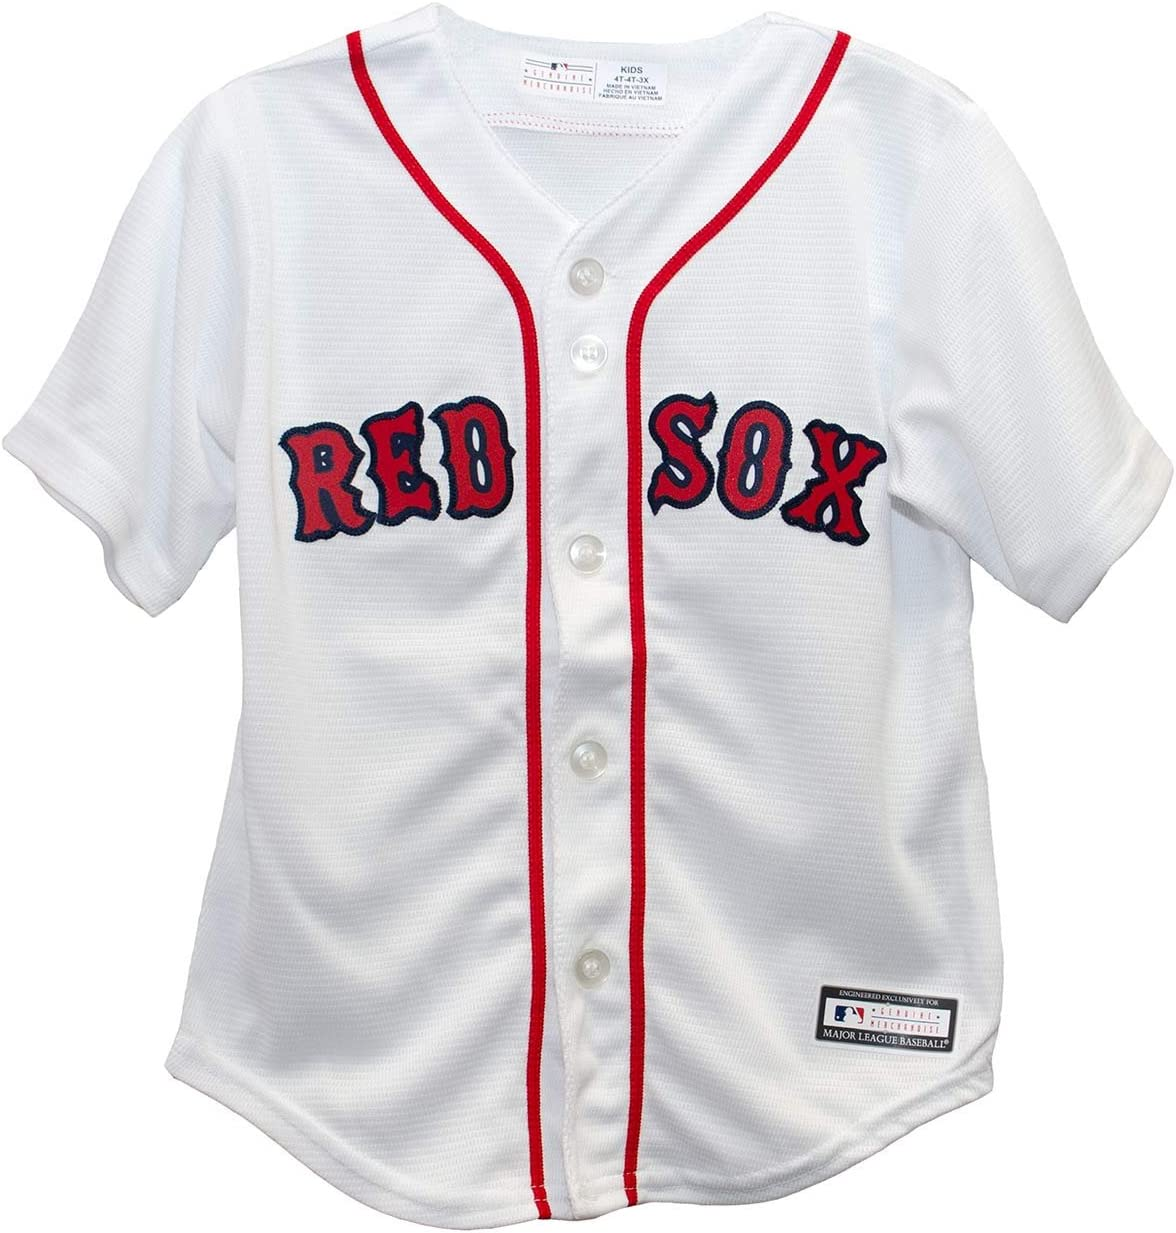 Mookie/_Betts/_Boston/_Red/_Sox/_Navy Cool Base Player Jersey-Mens